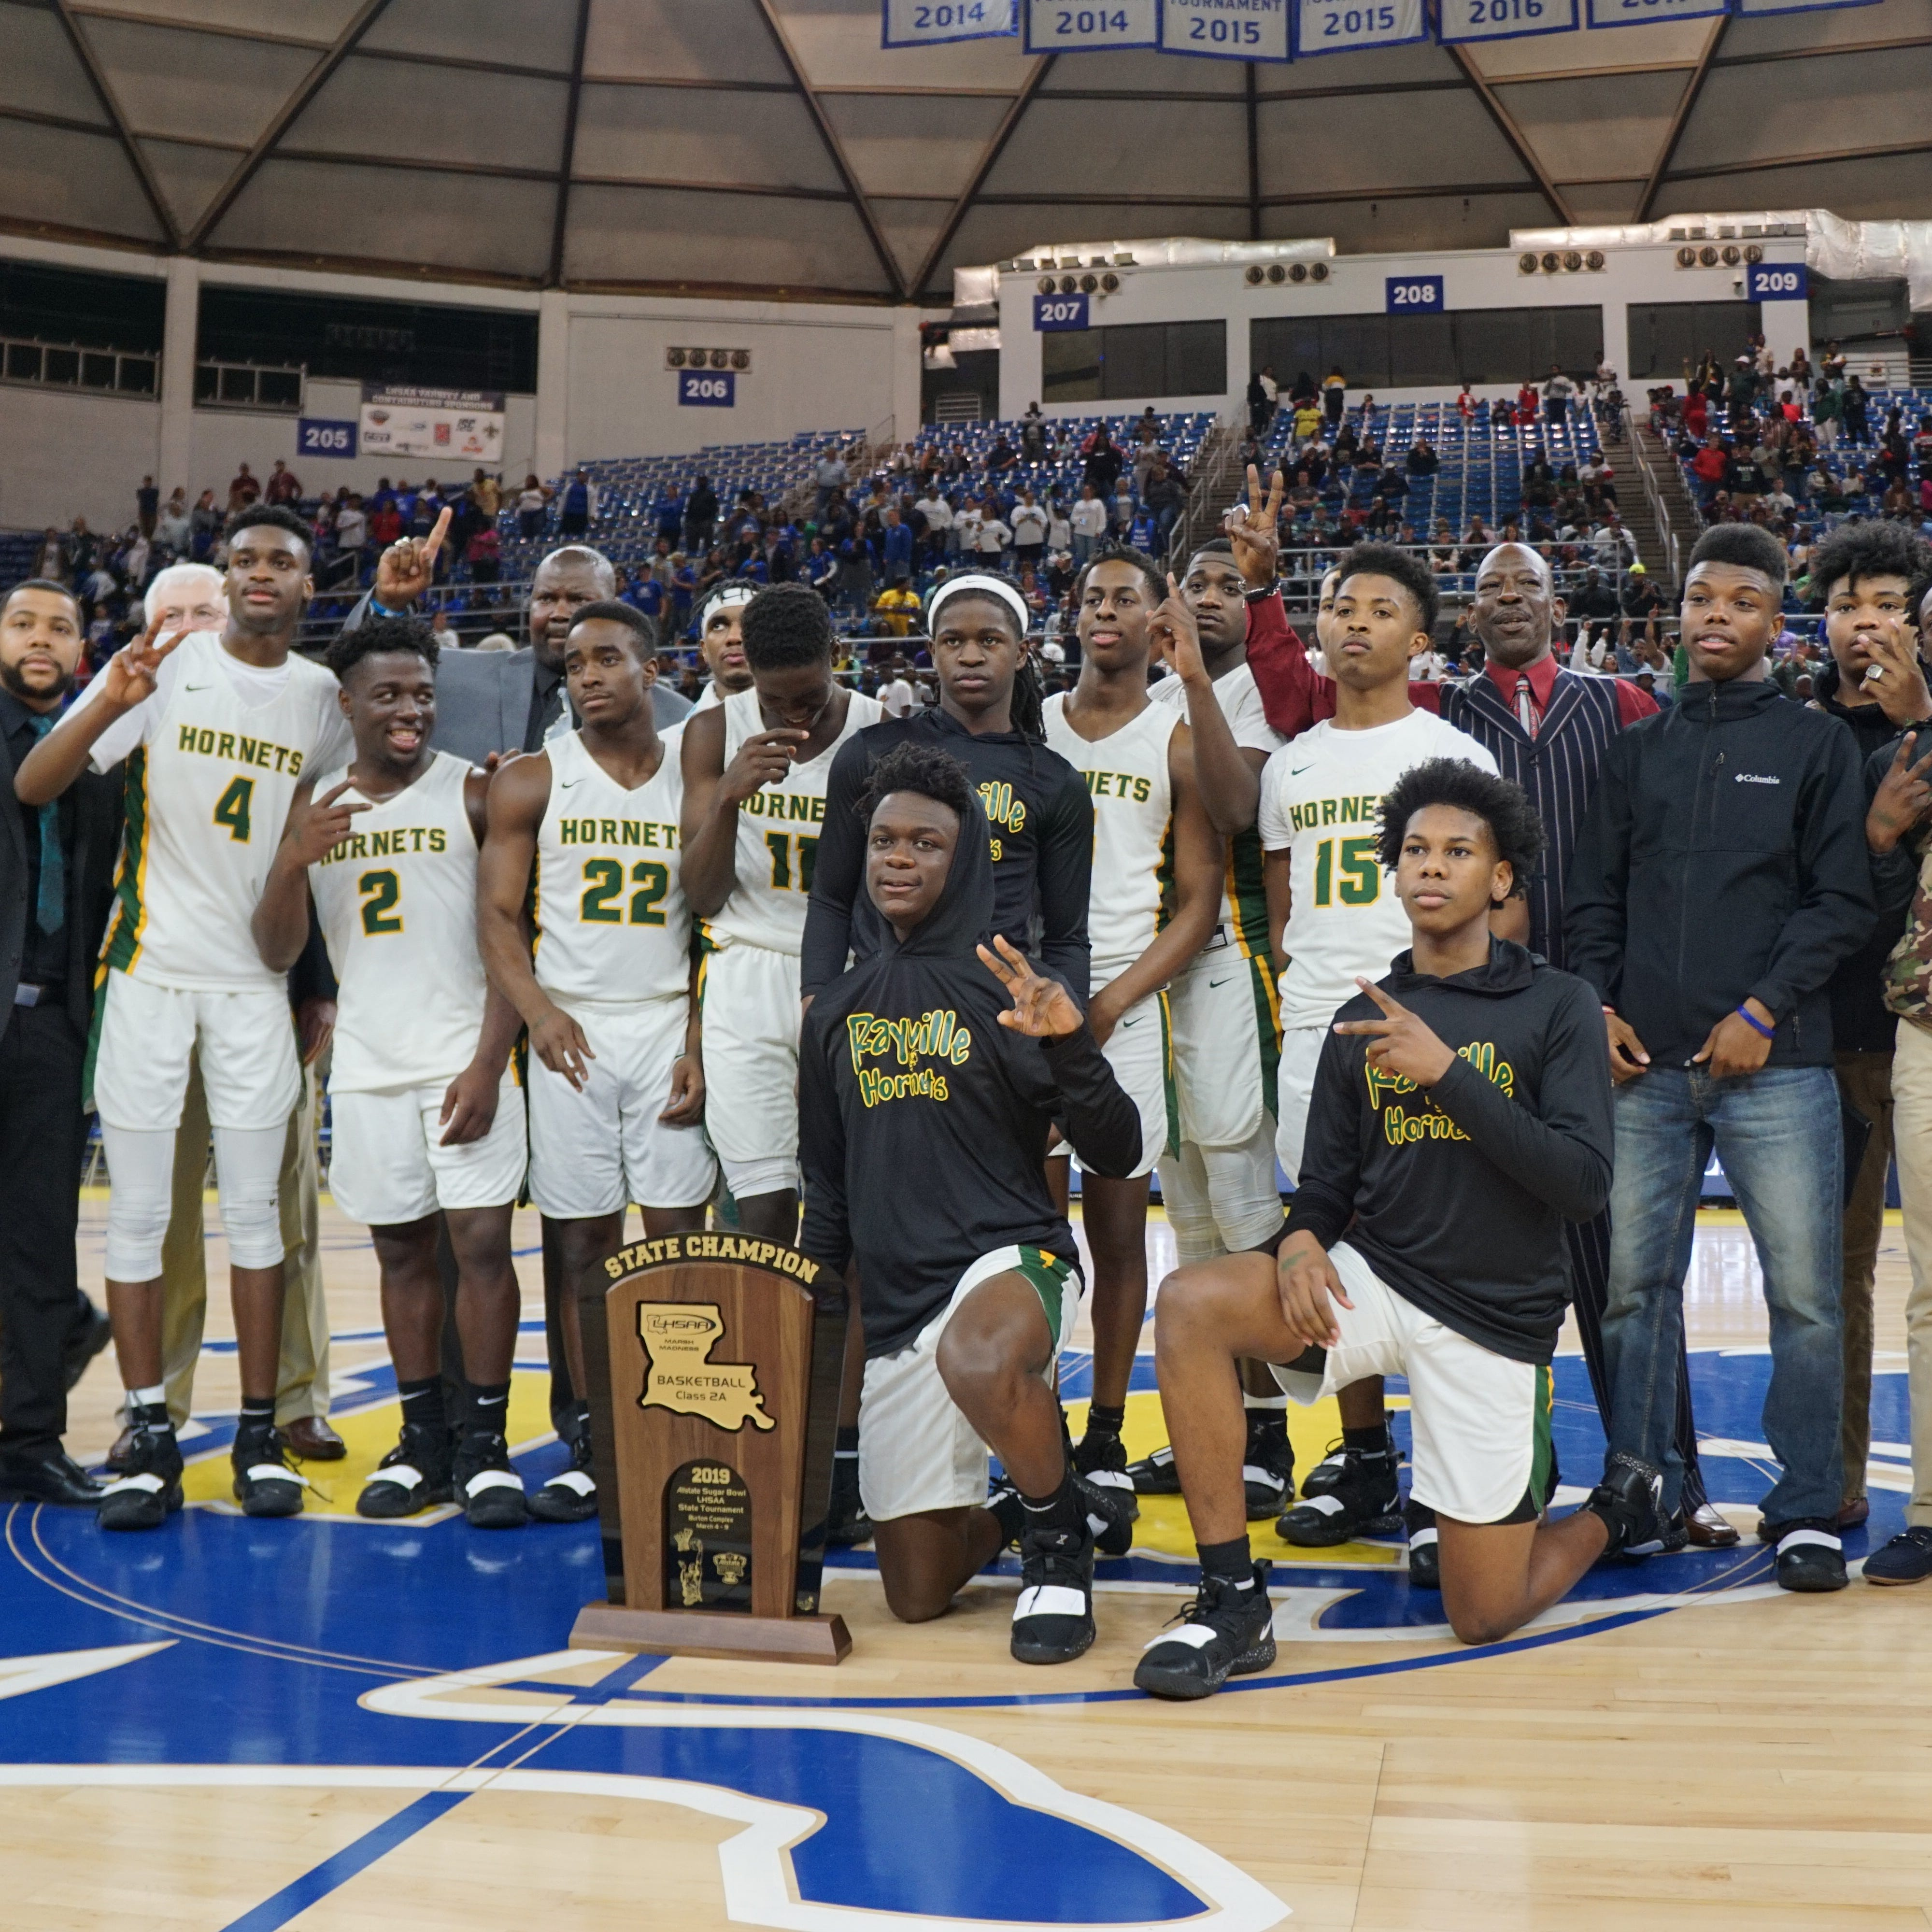 Rayville displays versatility en route to another 2A hoops title